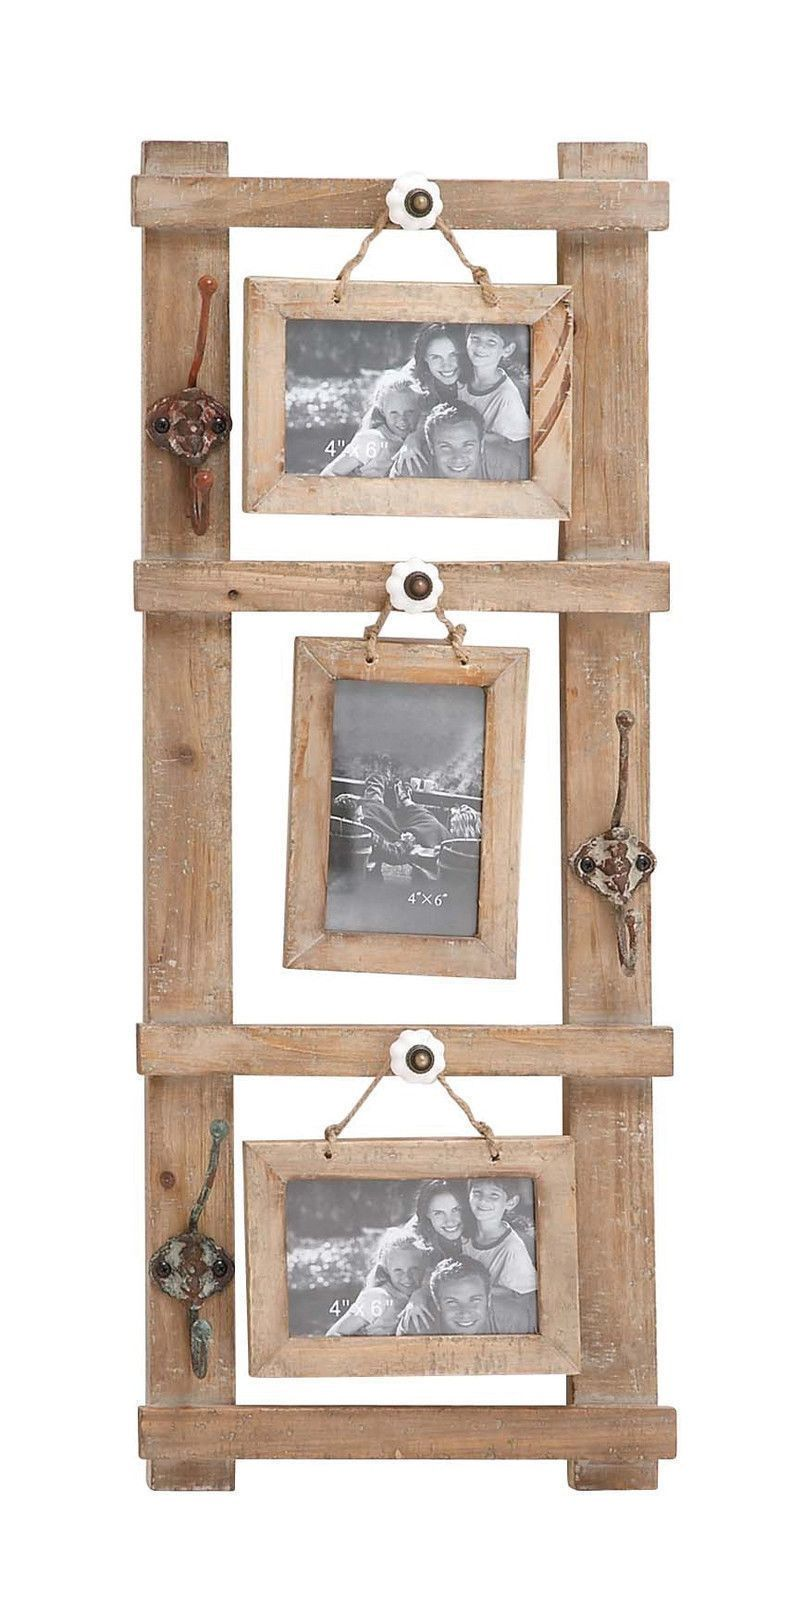 Rustic Western Wood Picture Frame 3 Hanging 5x7 Photos Vintage Look ...